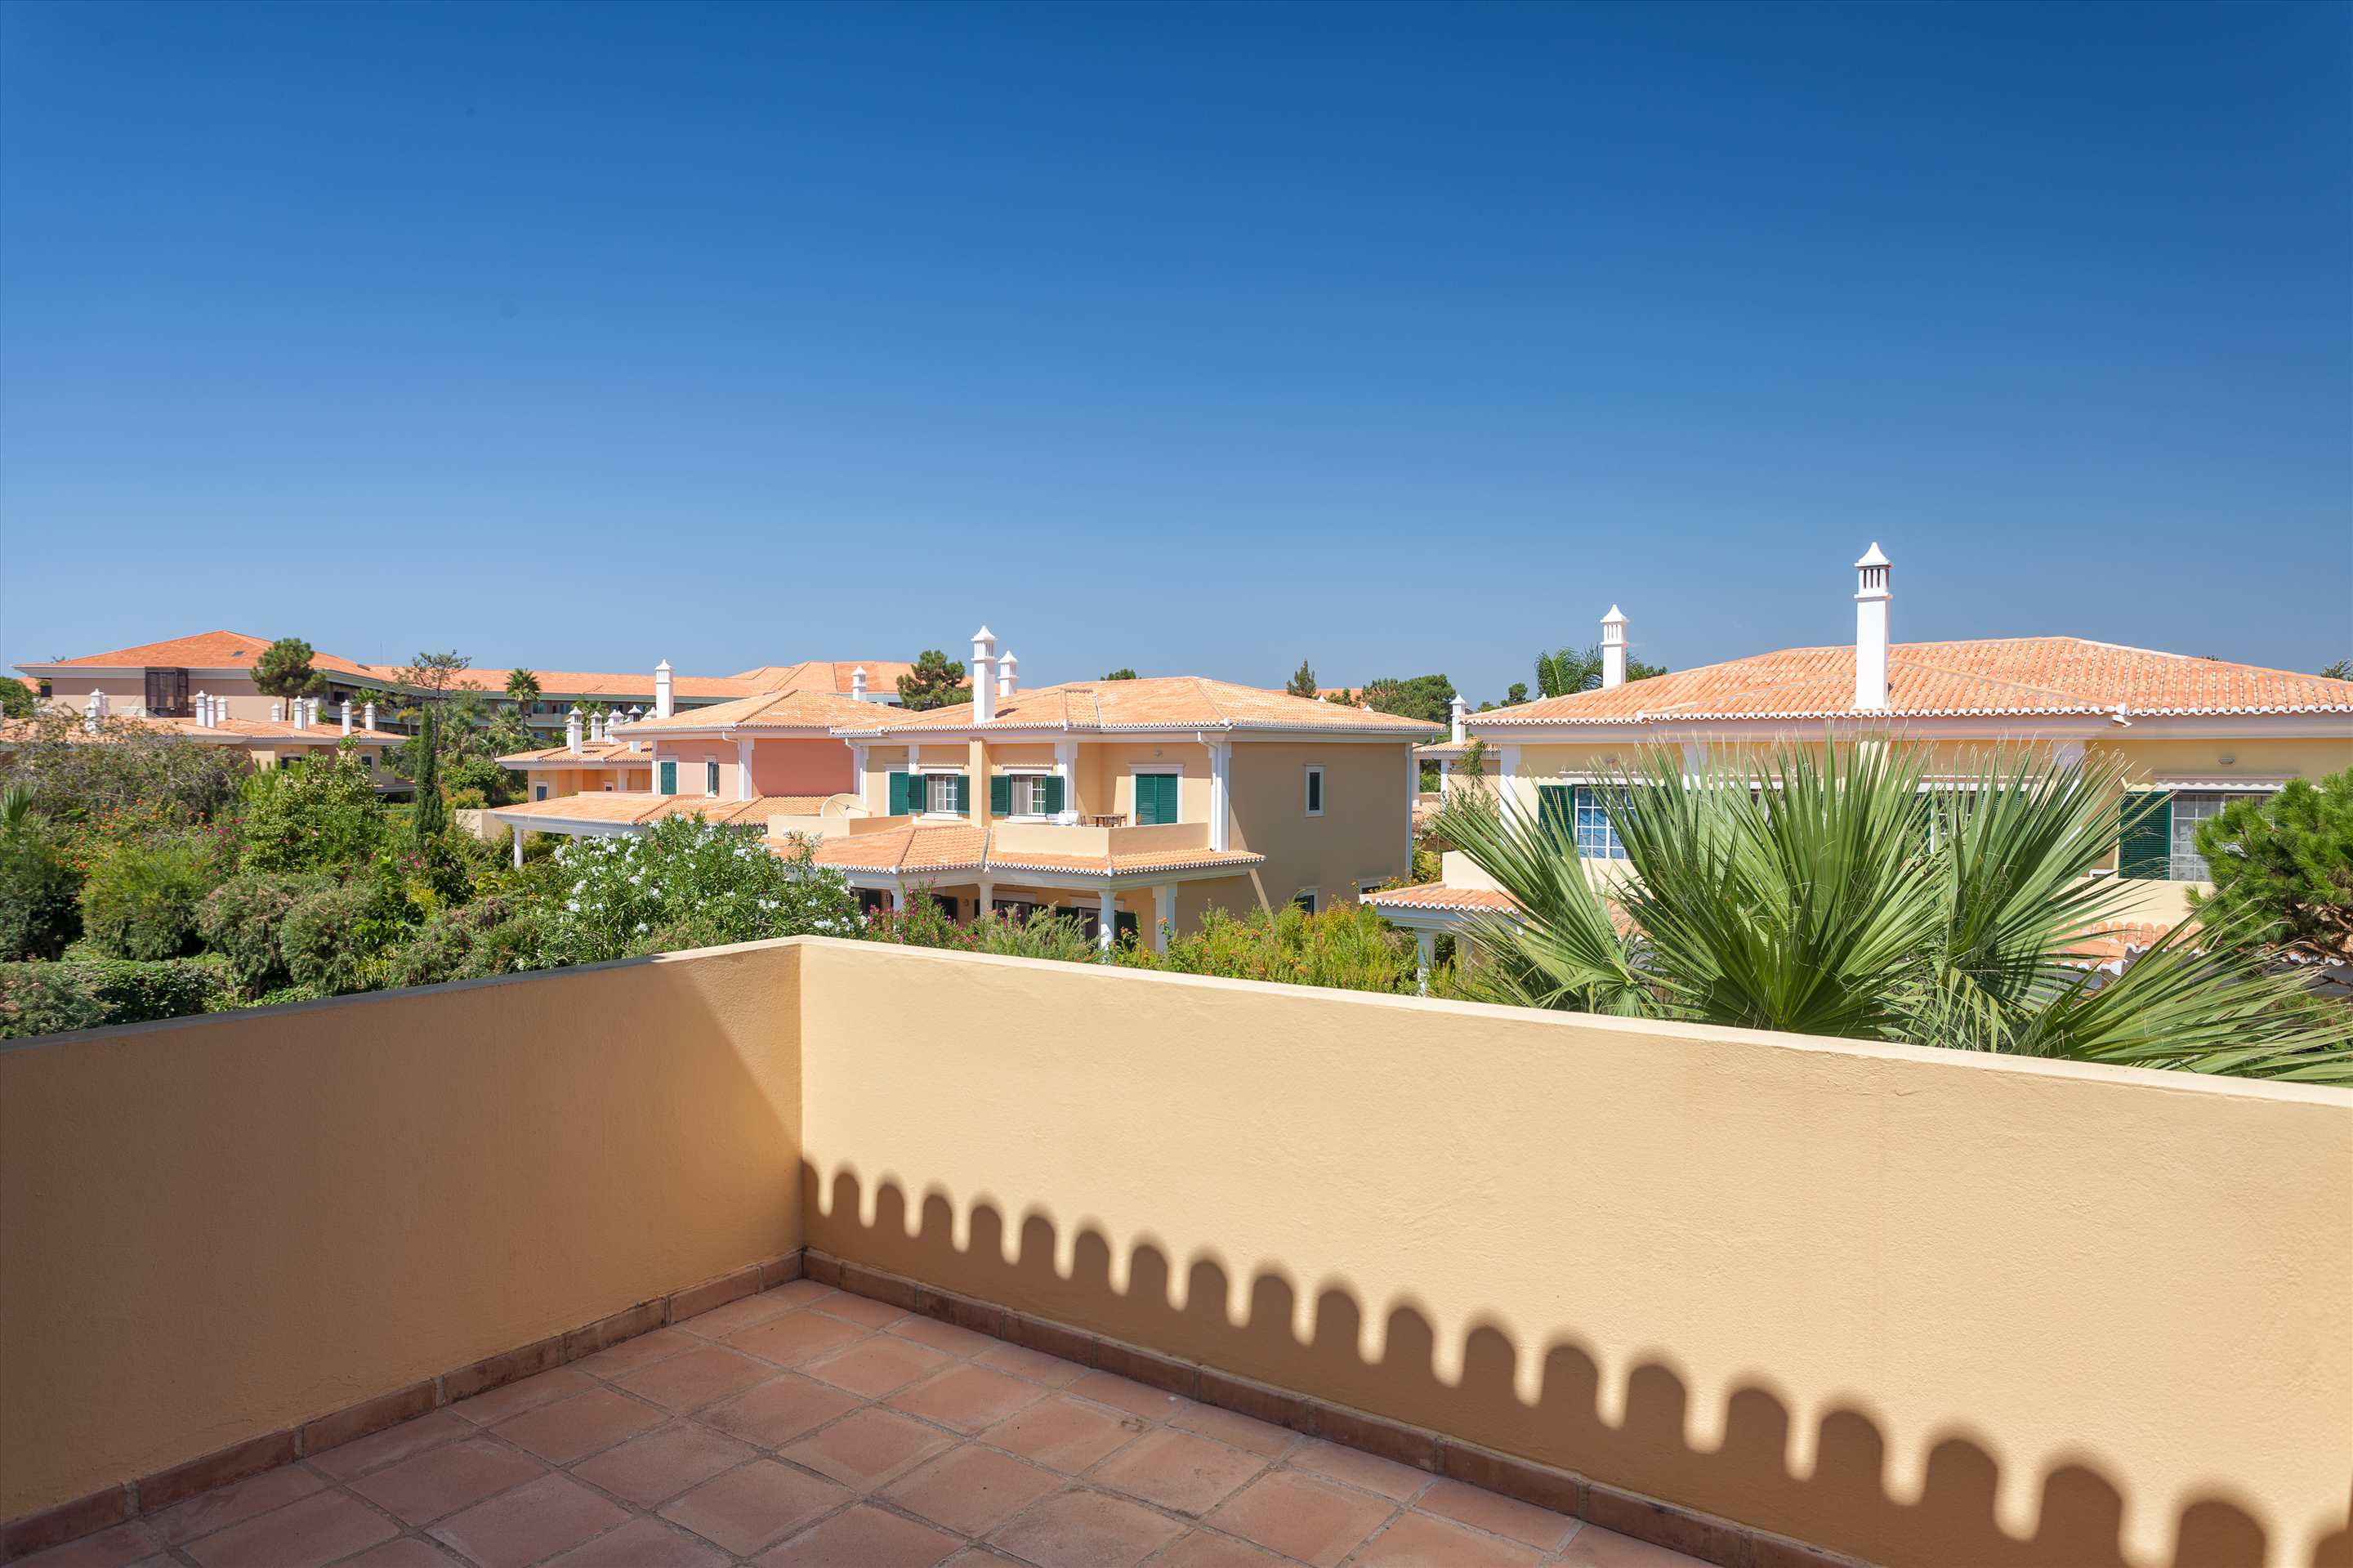 Martinhal Quinta Townhouse (3 Bedroom), 3 bedroom villa in Martinhal Quinta Resort, Algarve Photo #15